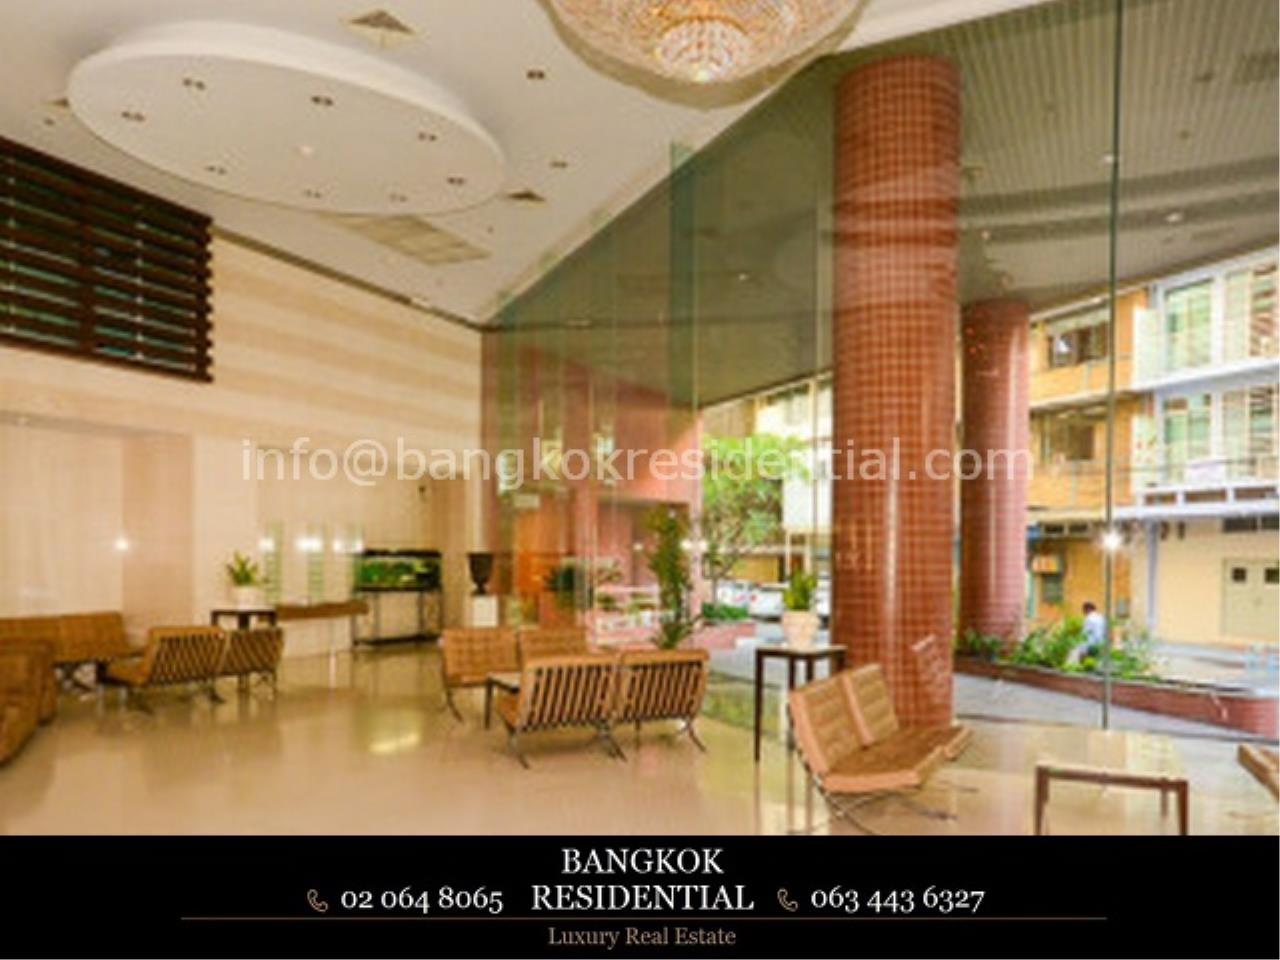 Bangkok Residential Agency's 3BR Citi Smart For Rent (BR5921CD) 4